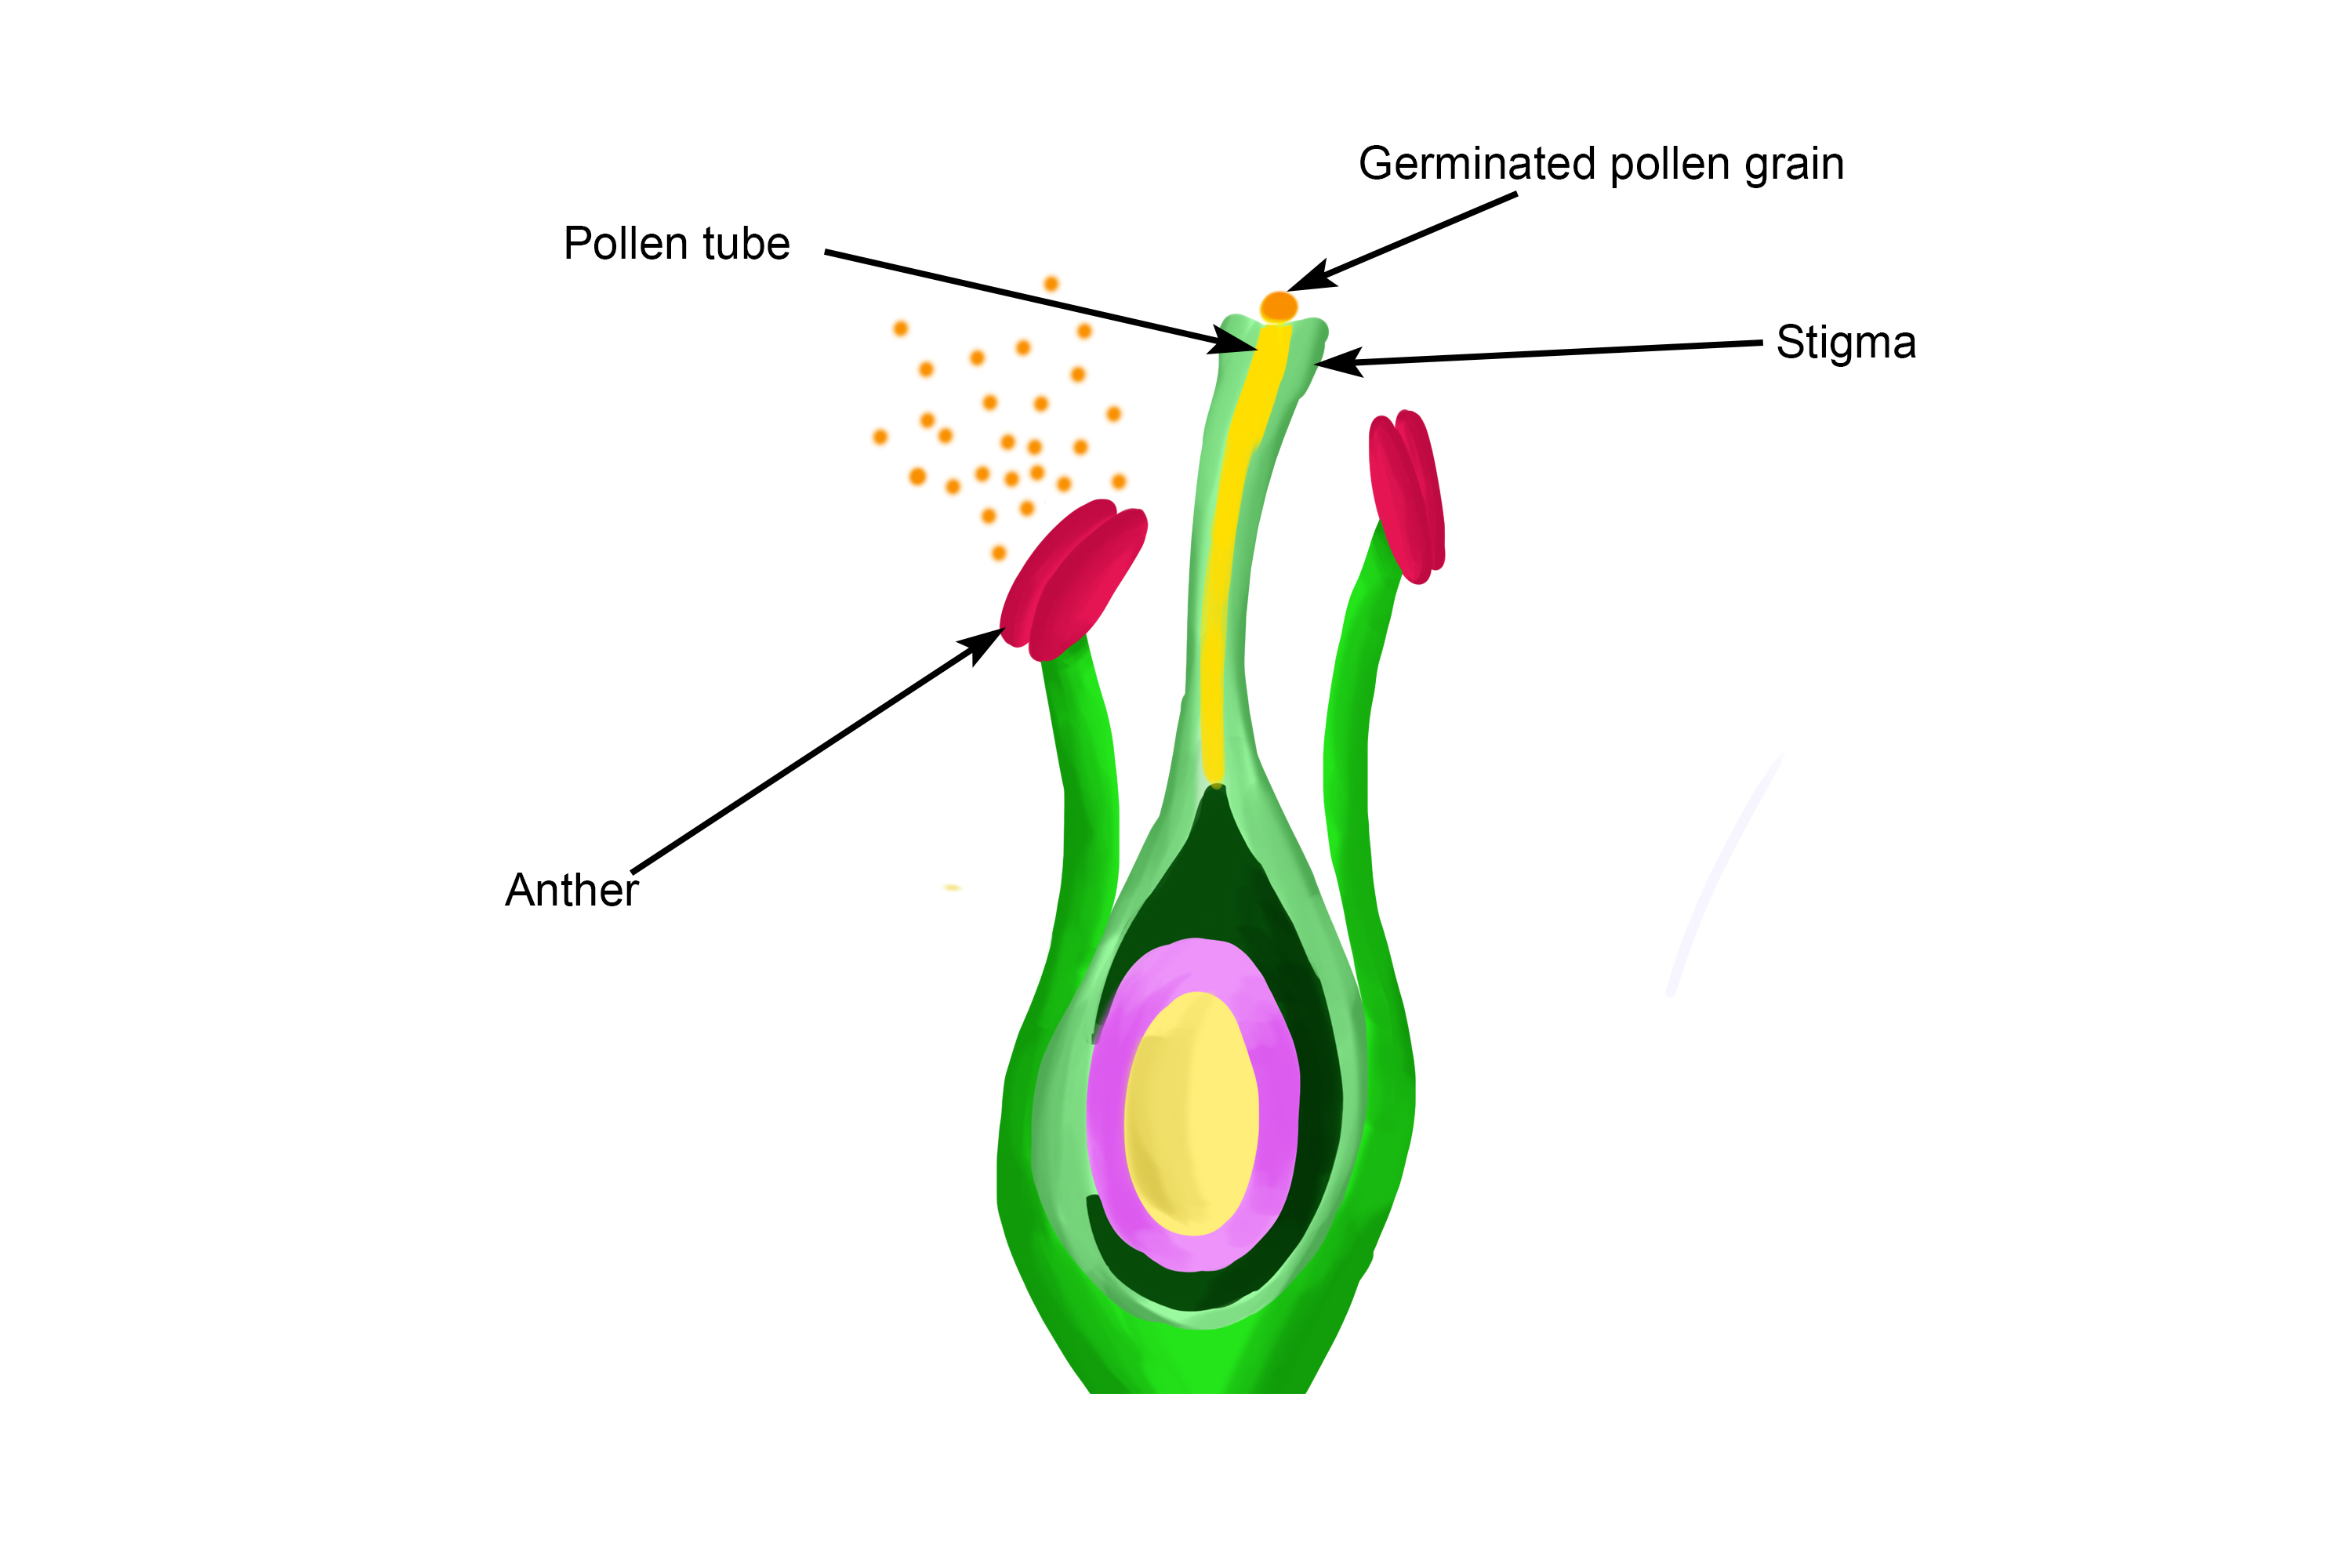 The pollen tube grows down from the stigma into the style